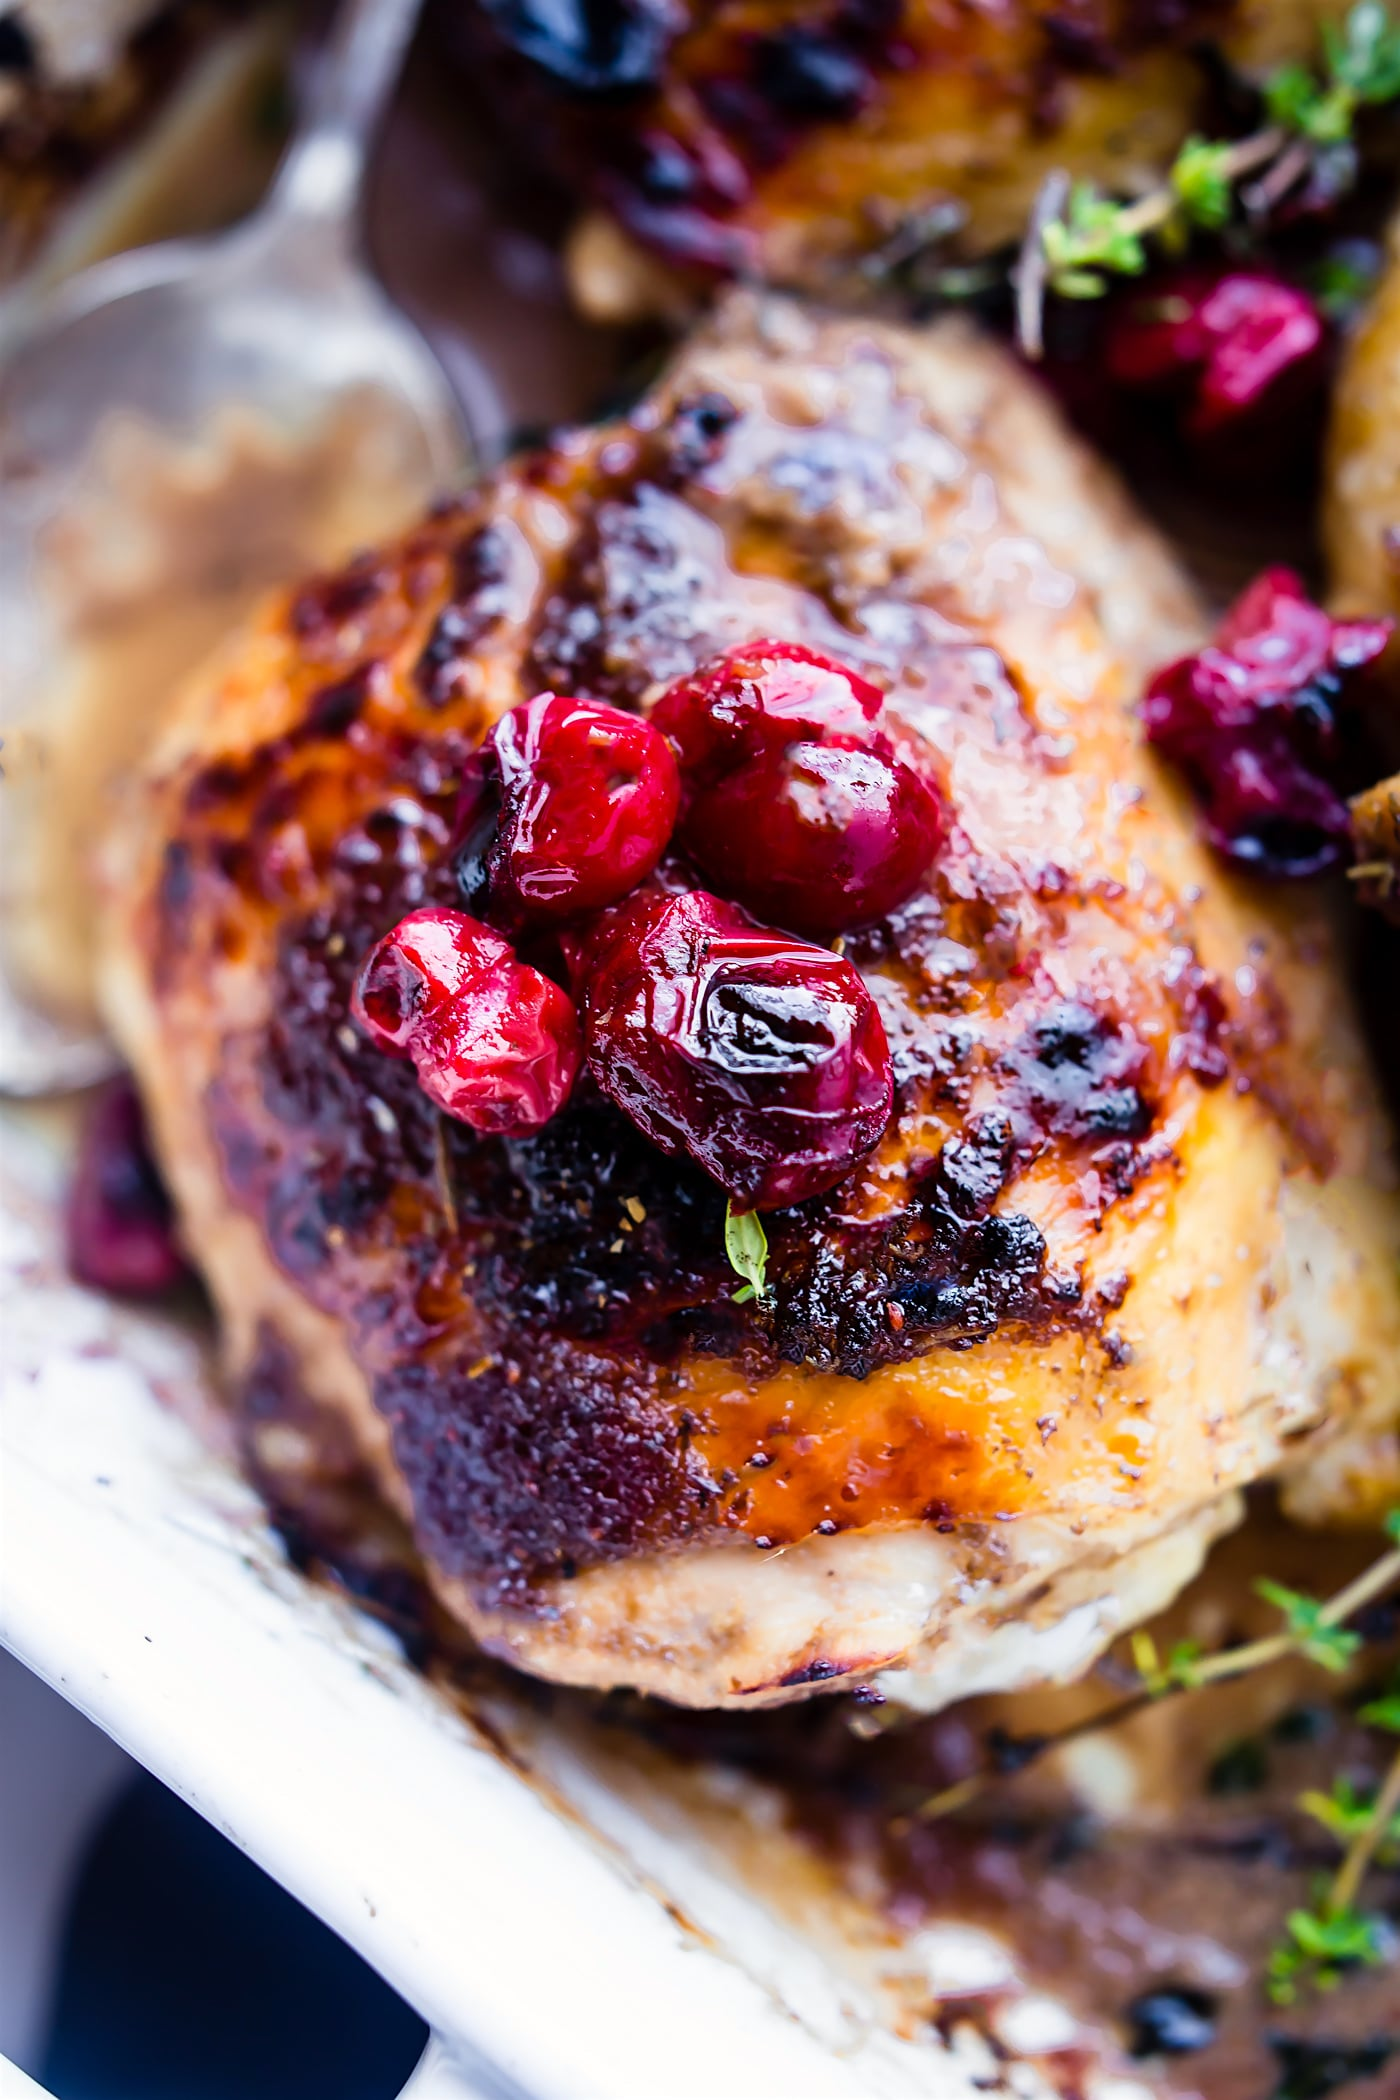 Balsamic Roasted Chicken with Cranberries prepped and cooked inONE PAN! Yes, your holiday table is complete. This Paleo Cranberry Balsamic Roasted Chicken is a simple yet healthy dinner. A sweet tangy marinade makes this roasted chicken extra juicy and extra crispy. www.cottercrunch.com